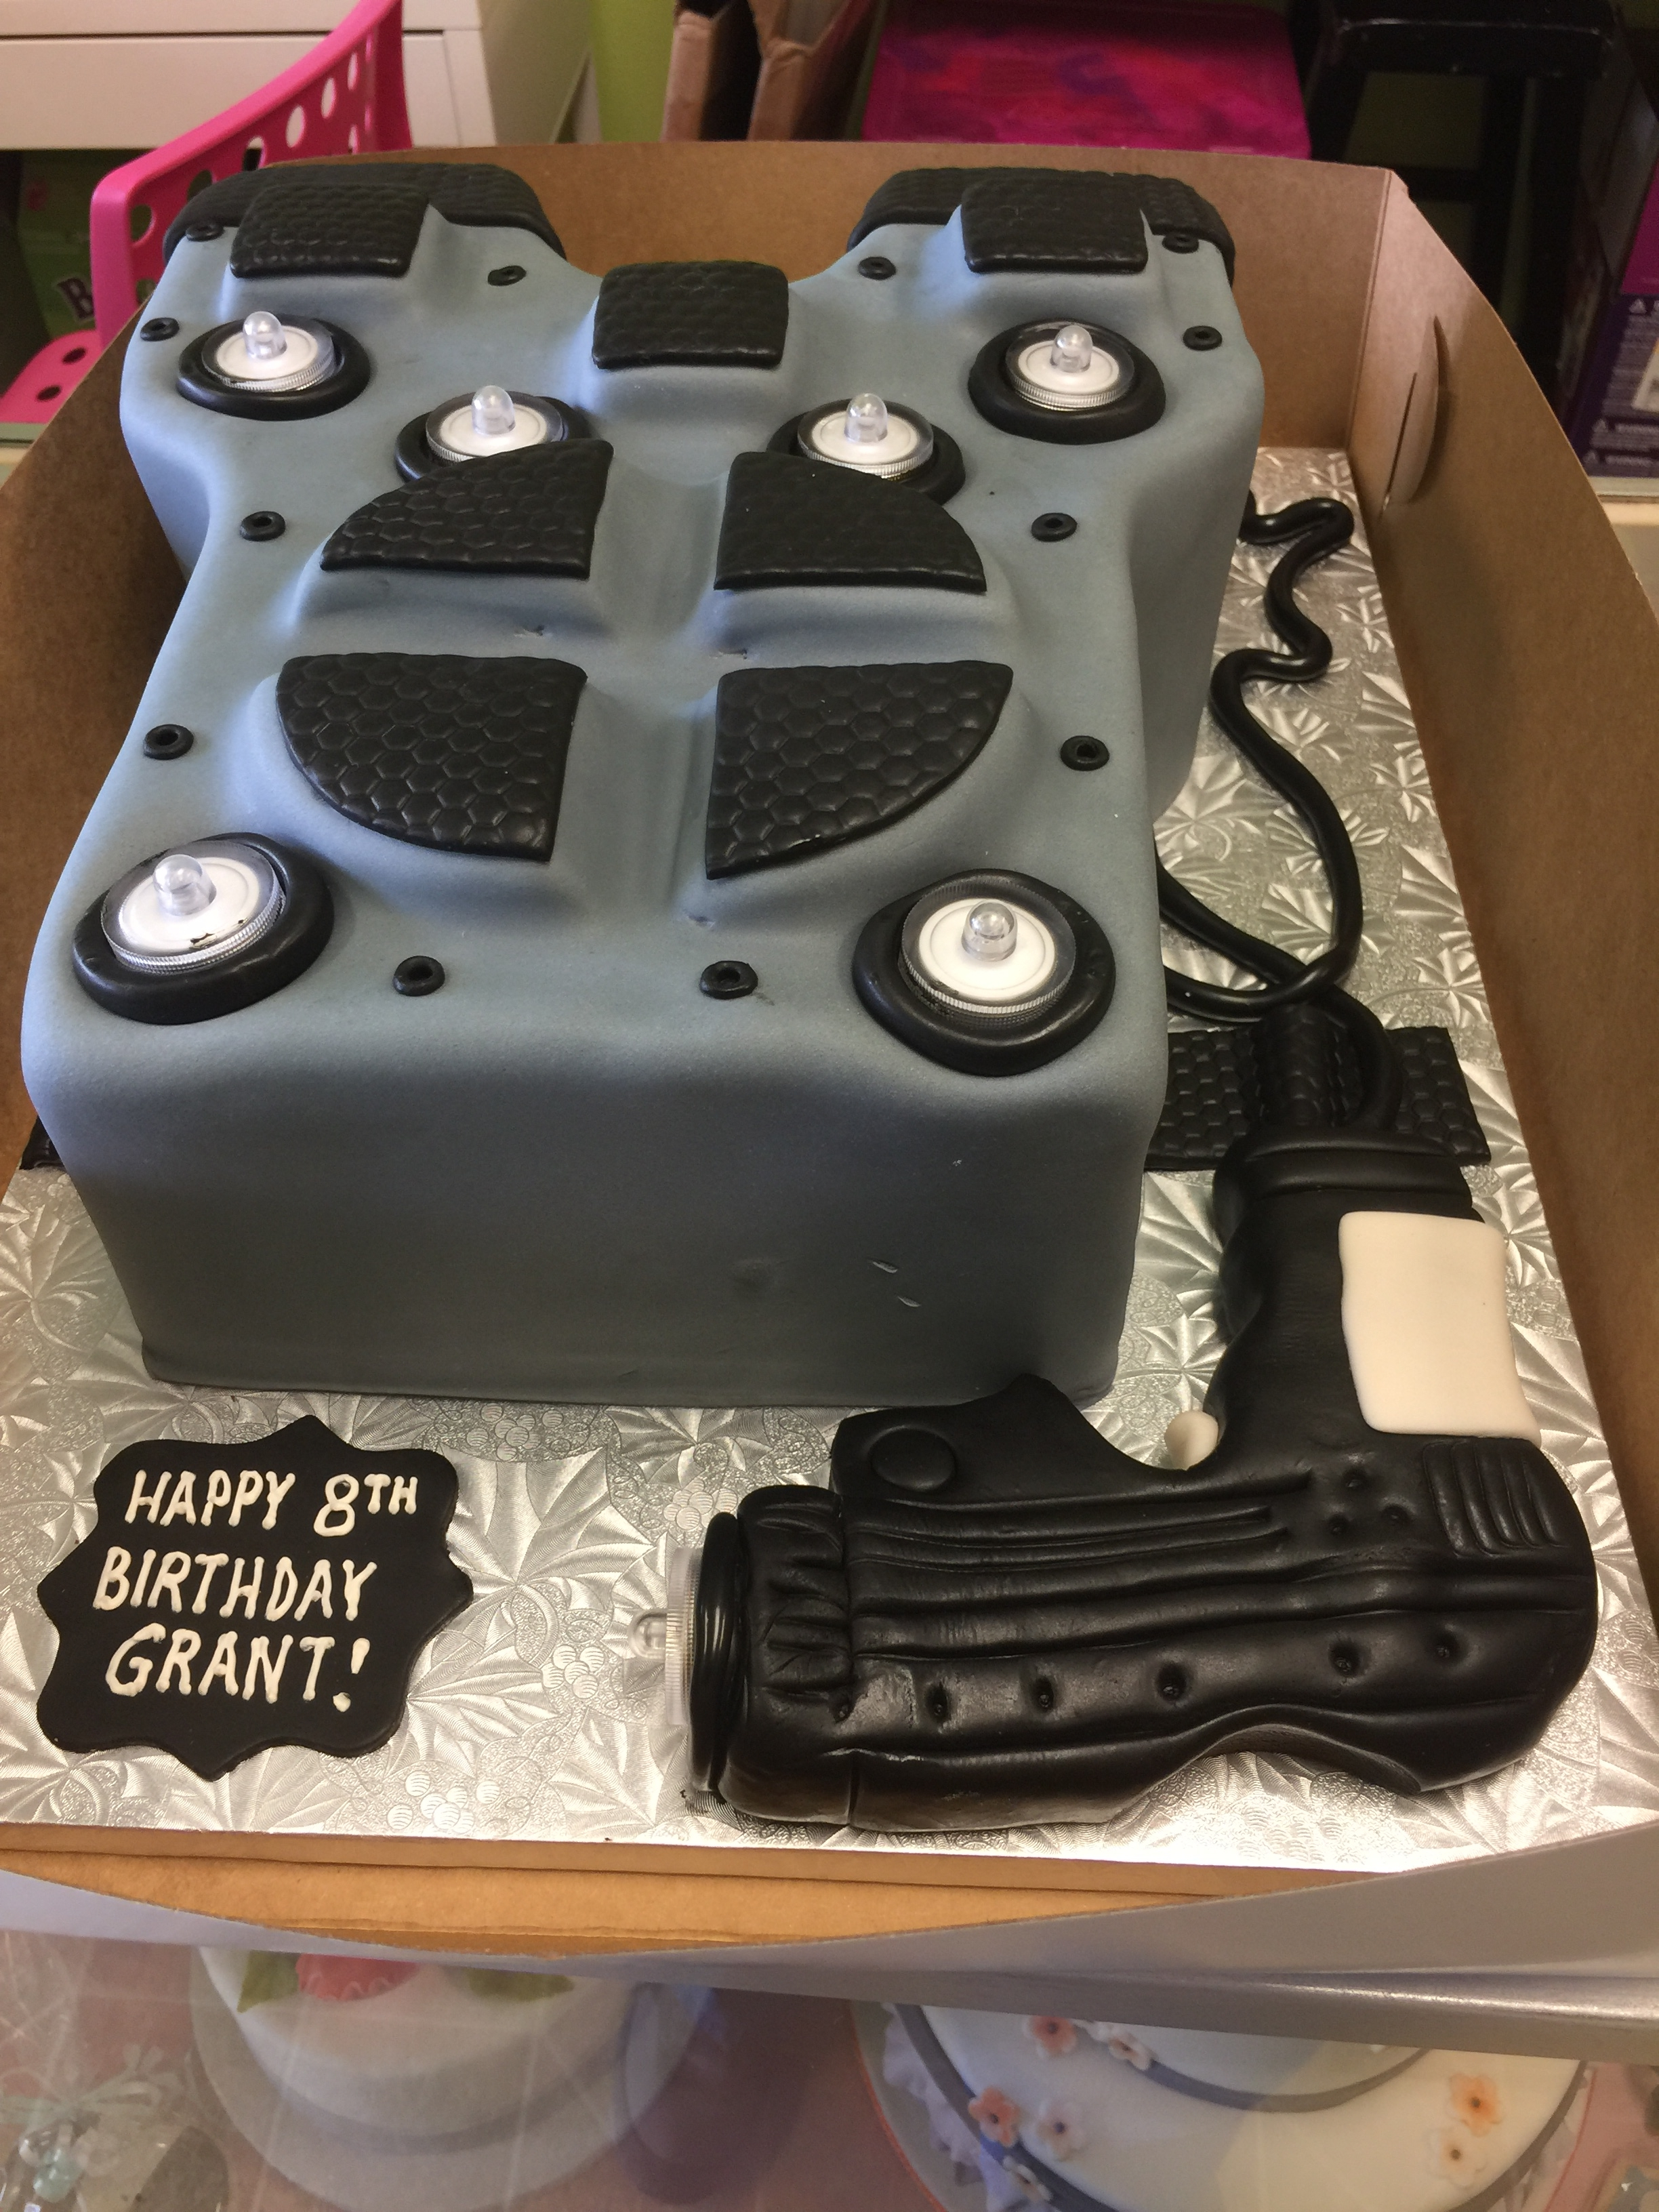 3581, 8th birthday, eighth birthday, laser tag, uniform, gun, gray, black, shirt, carved